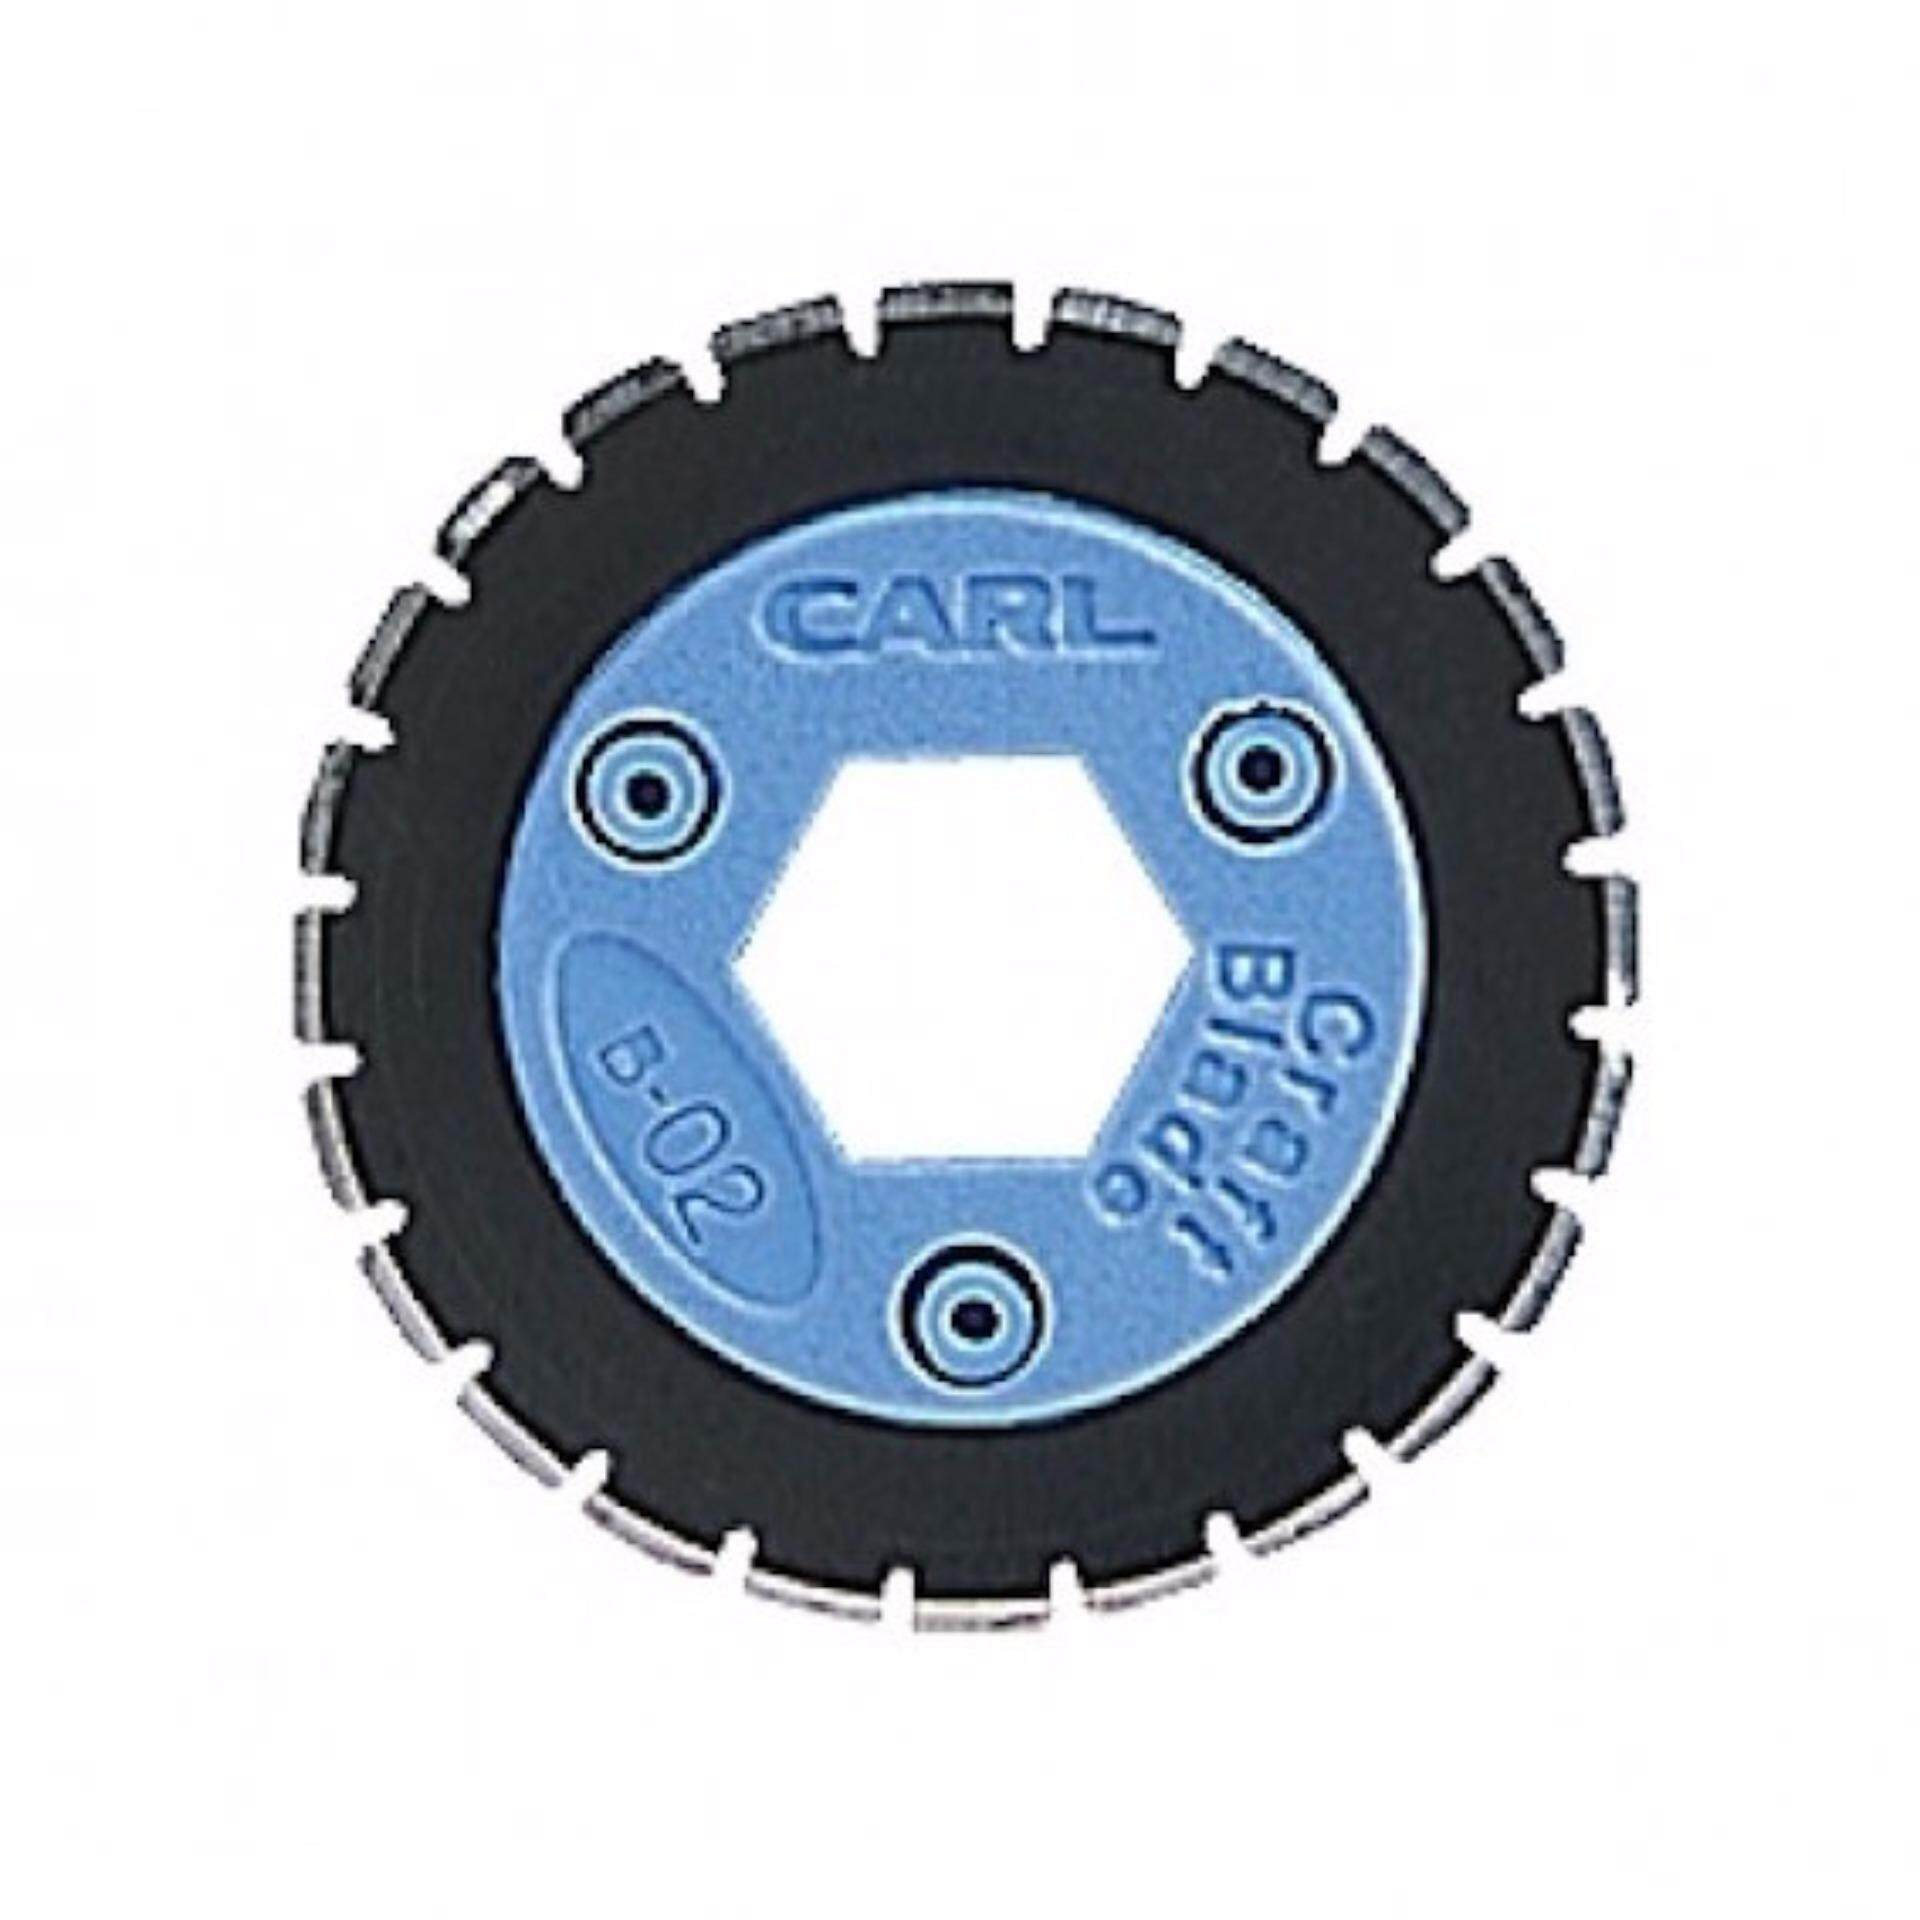 CARL B-02 CUTTER BLADE FOR DC-212&DC-218 - PERFORATION